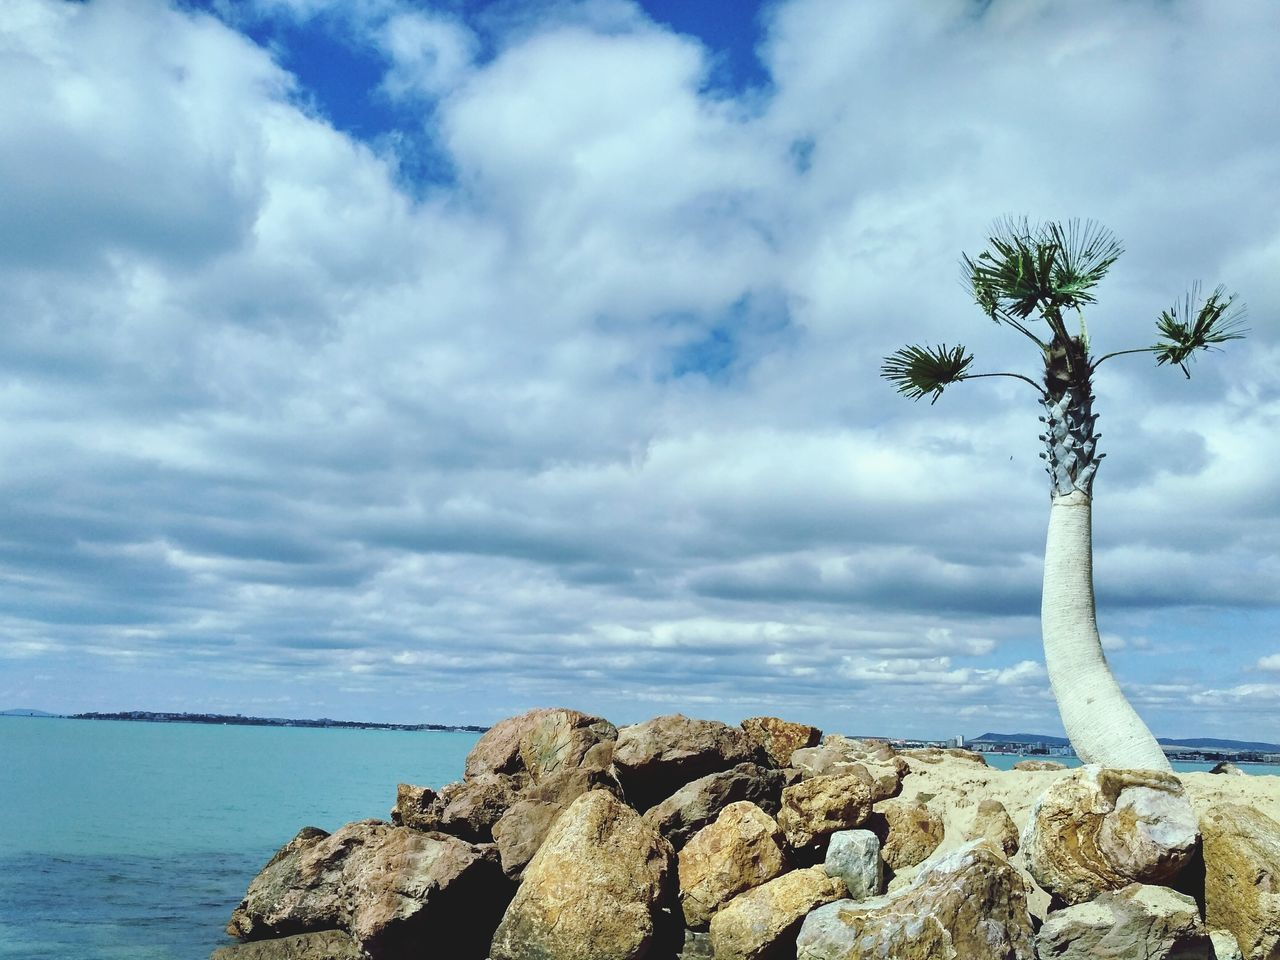 sky, sea, nature, scenics, horizon over water, beauty in nature, rock - object, tranquility, tranquil scene, cloud - sky, outdoors, palm tree, day, water, tree, no people